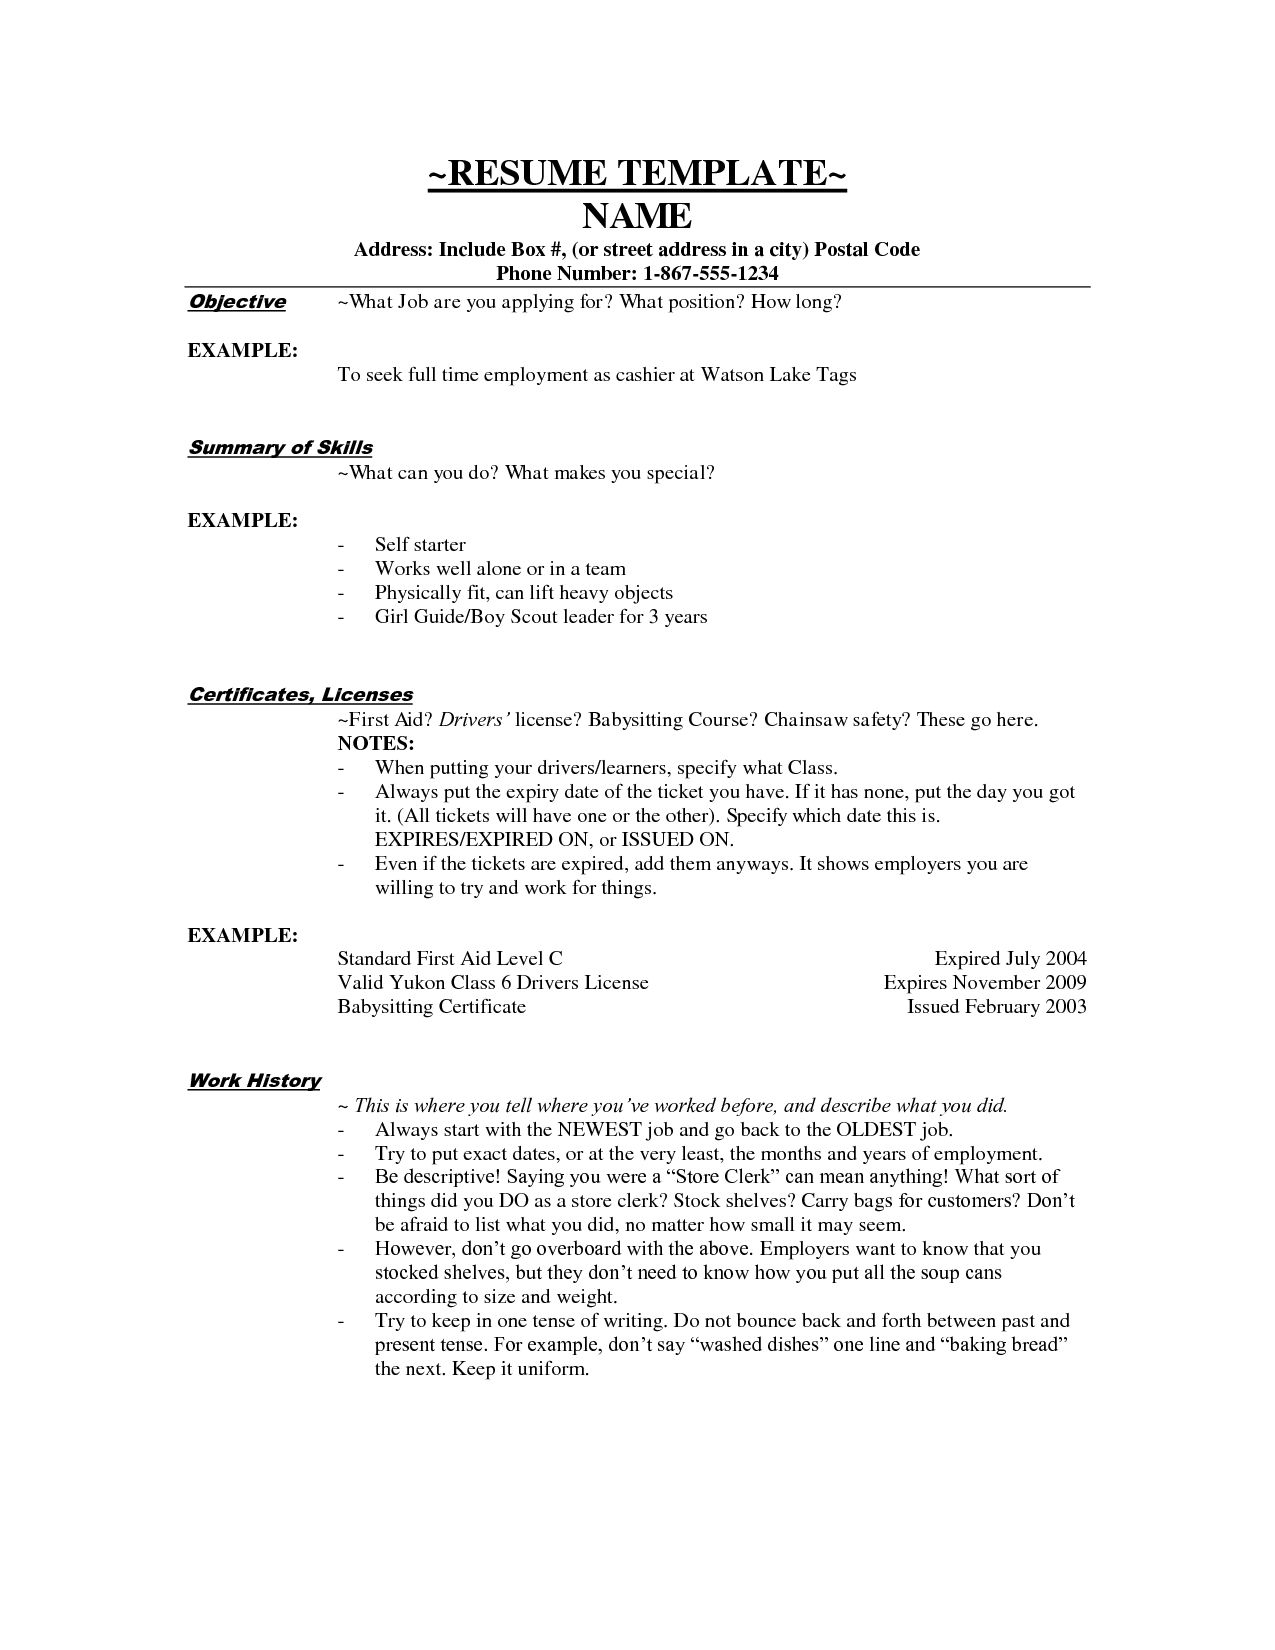 Professional Summary Resume Prepossessing Examples Resumes Resume Career Summary Professional Samples Other Design Ideas